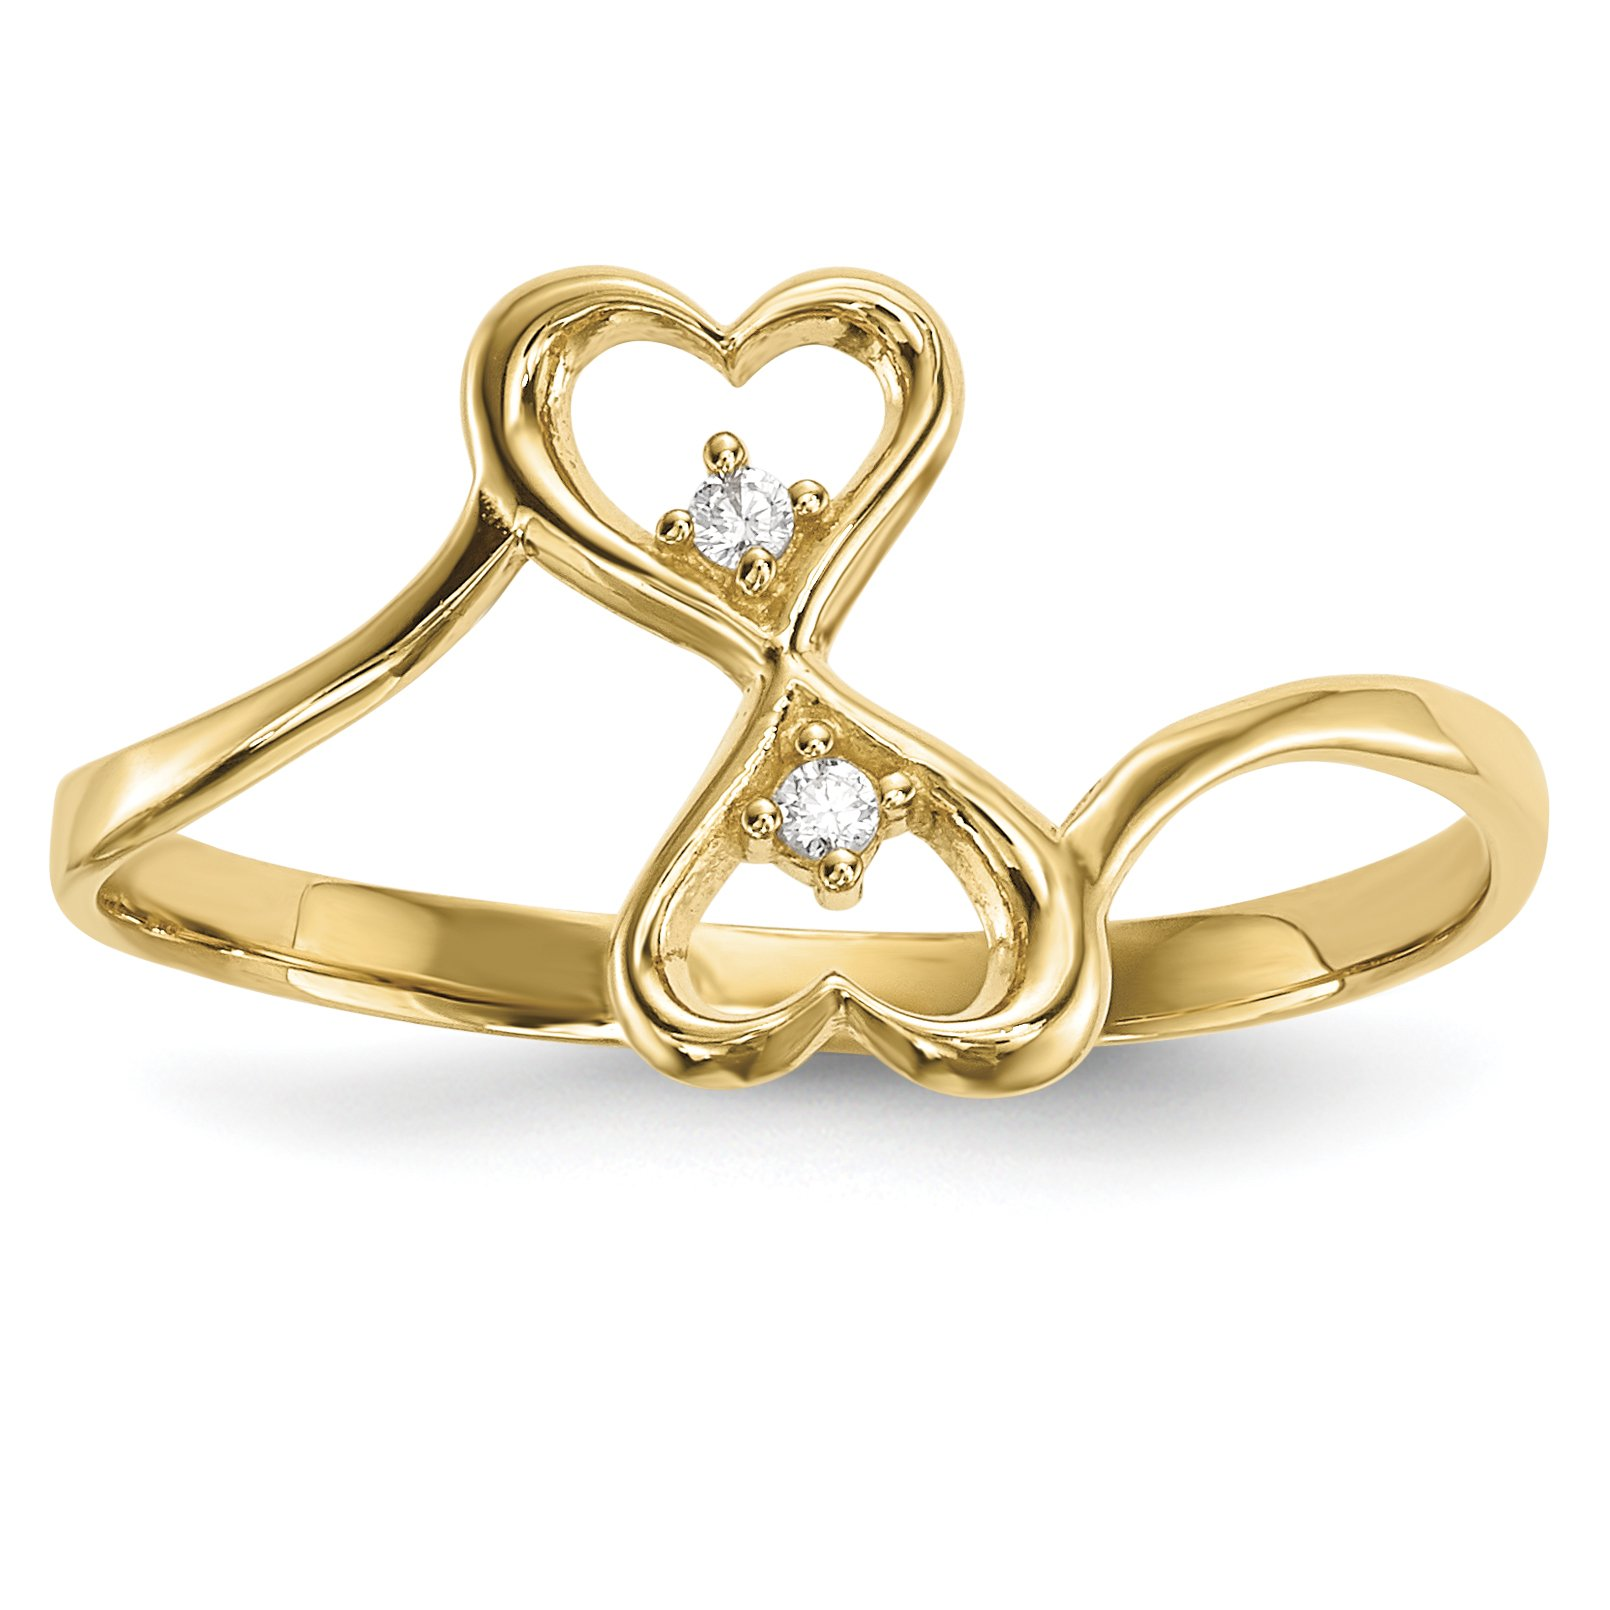 ICE CARATS 14k Yellow Gold Cubic Zirconia Cz Double Heart Band Ring Size 7.00 S/love Fine Jewelry Gift Set For Women Heart